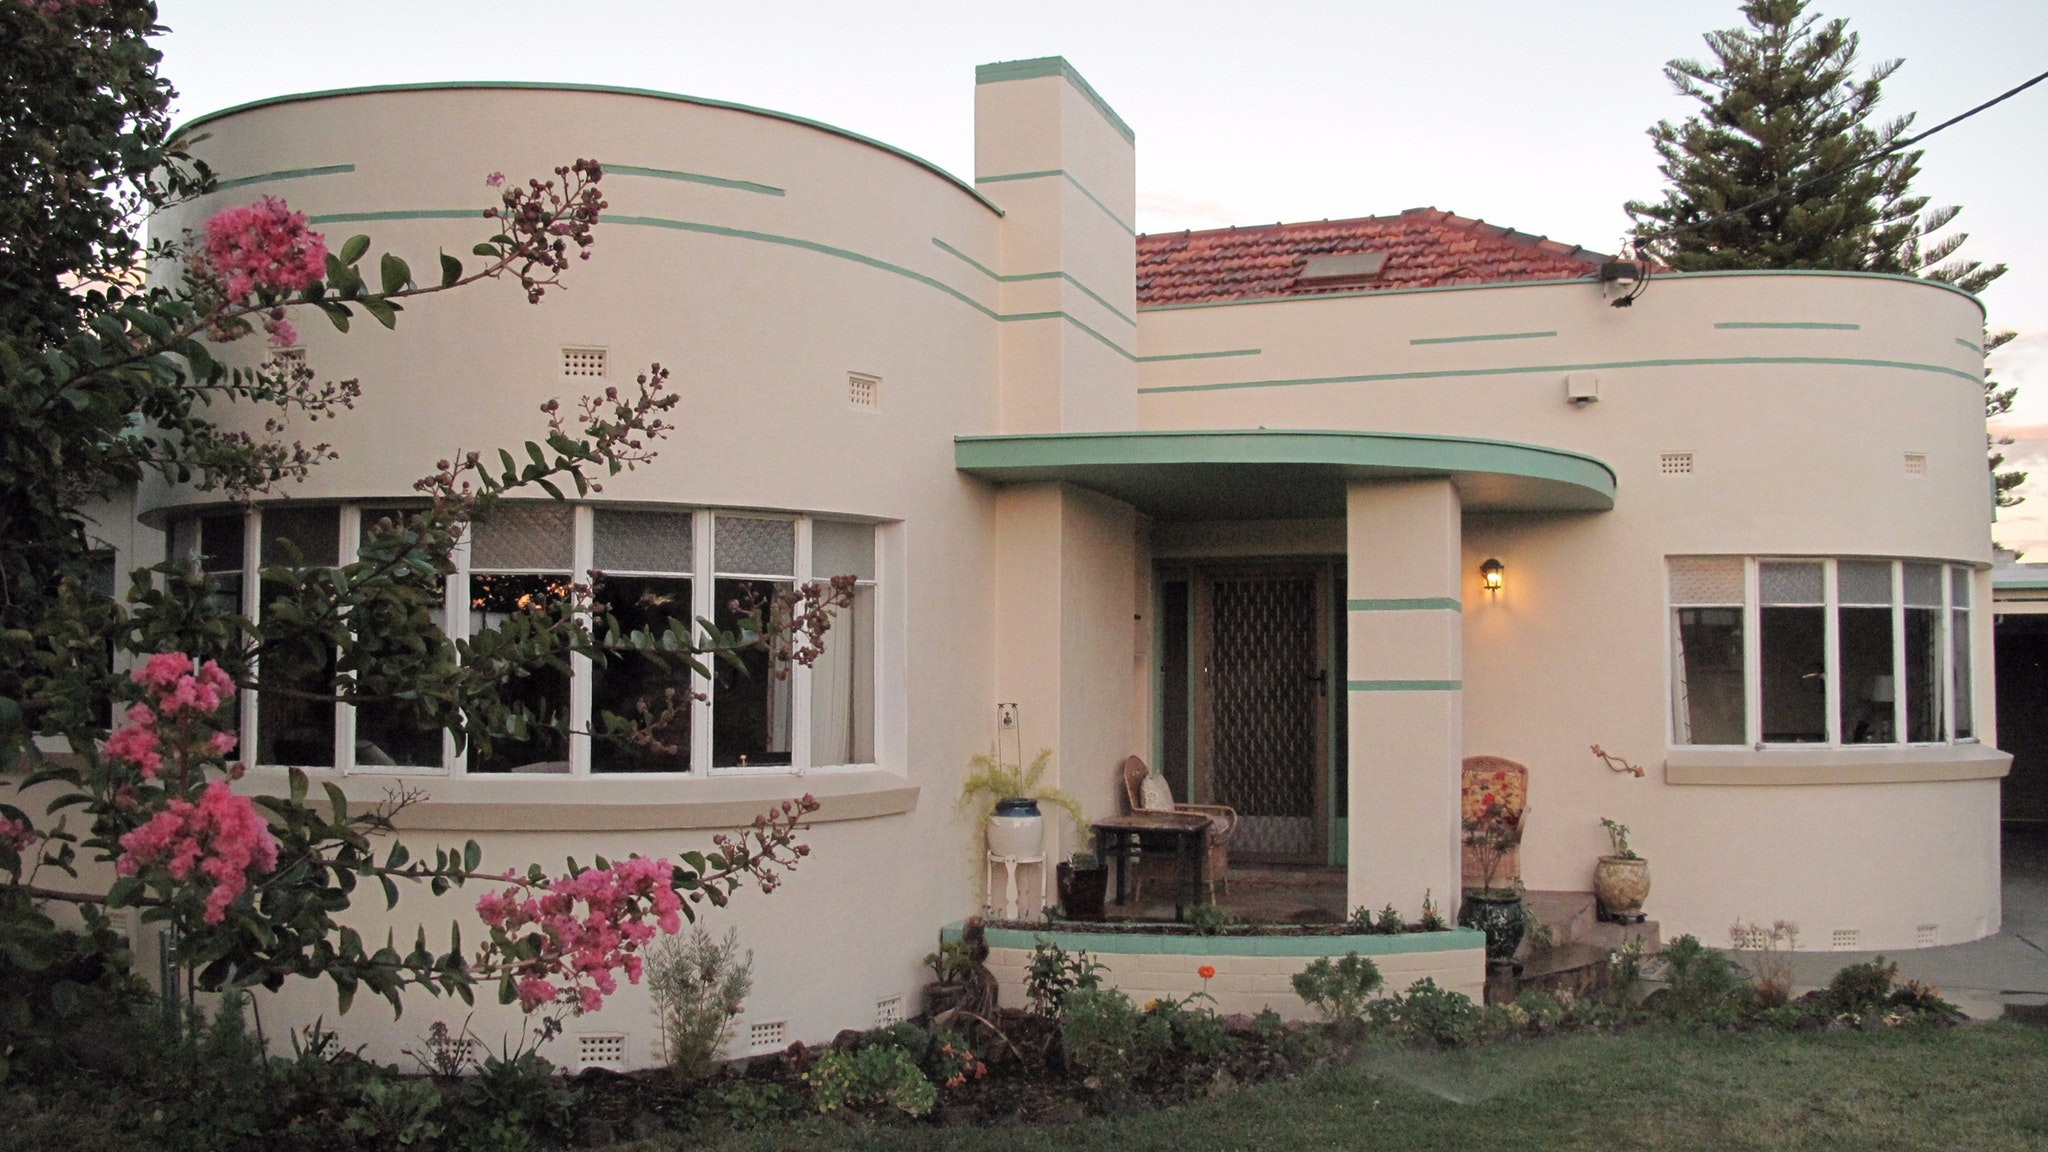 Photo of front of House